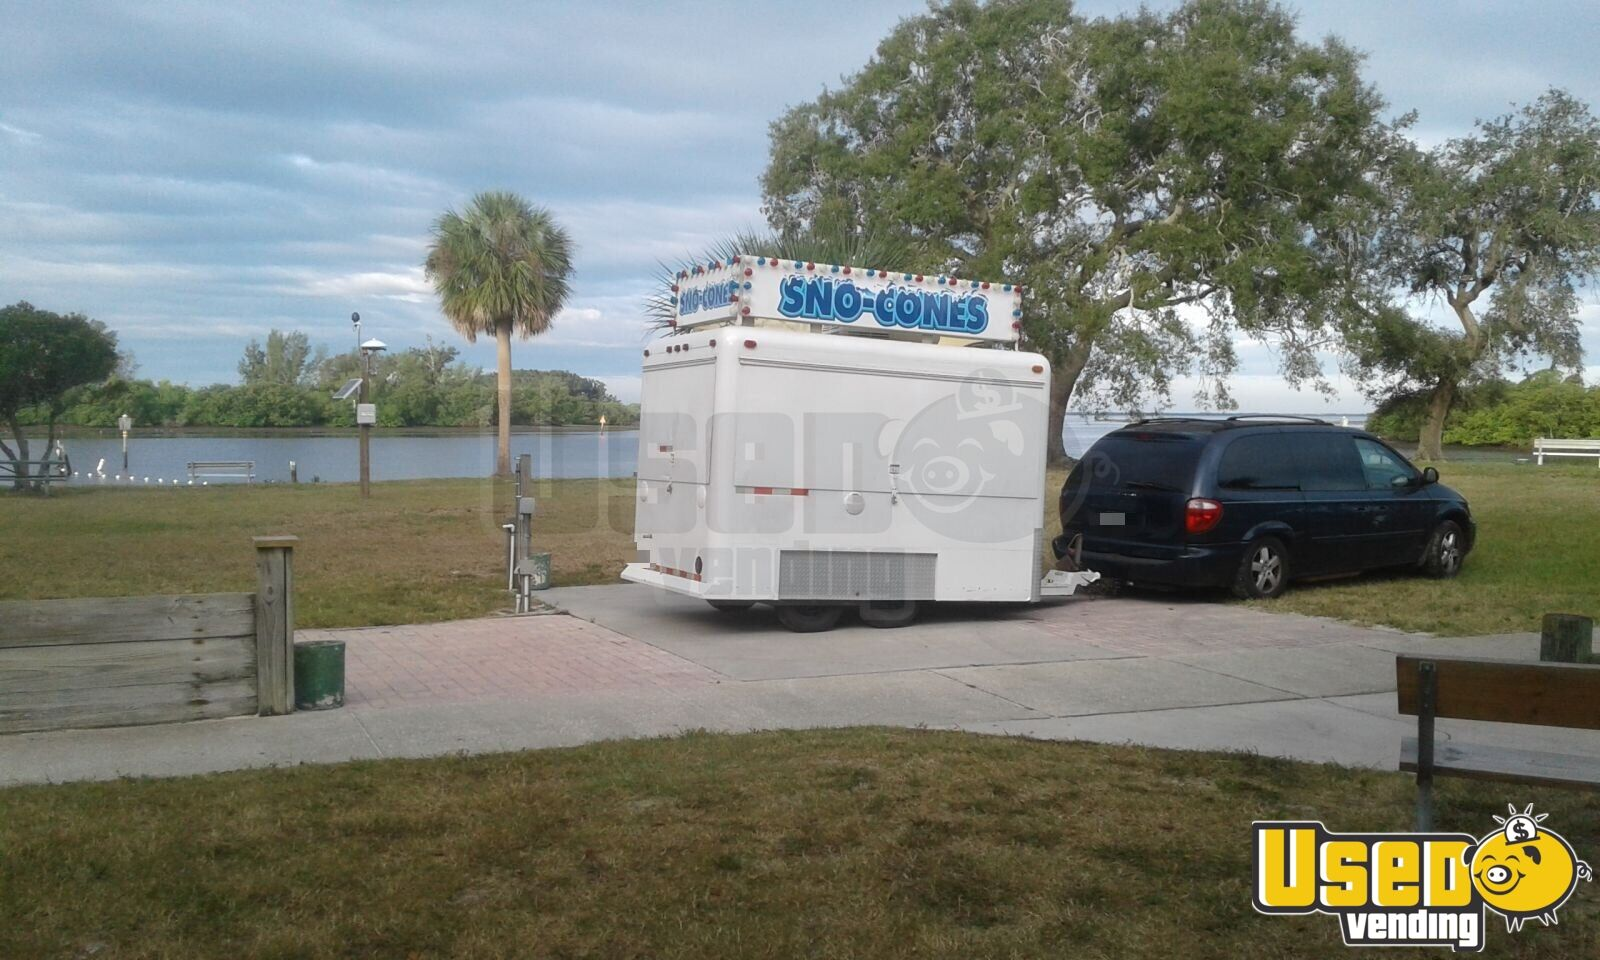 1982 Snowball Trailer Air Conditioning Florida for Sale - 2